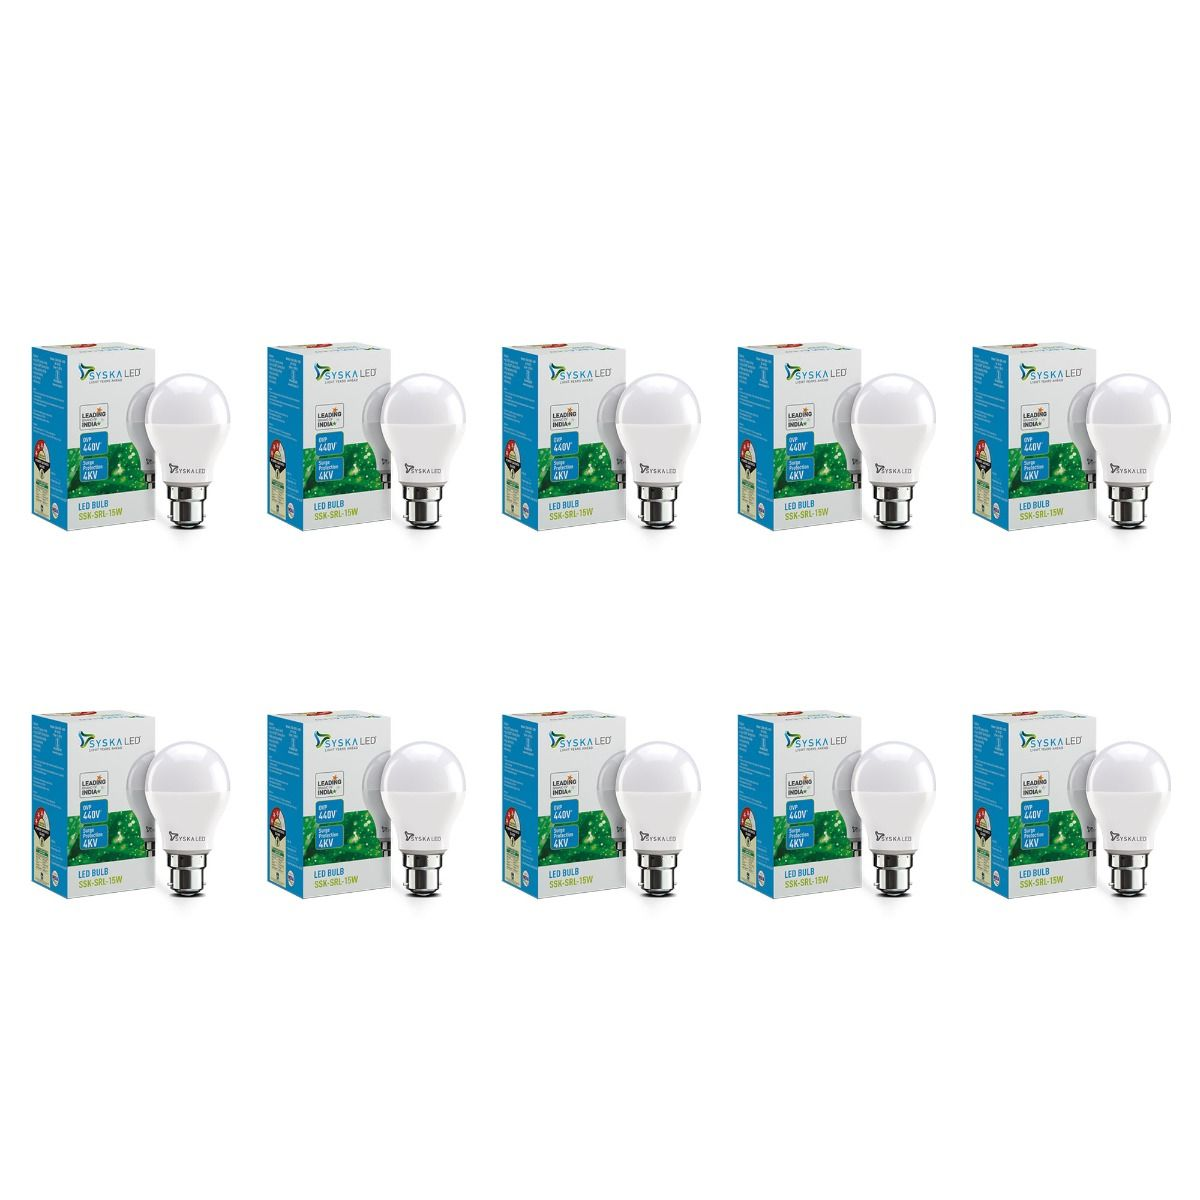 SYSKA 15W LED Bulbs with Life Span Up To 50000 Hours- (White)- Pack of 10